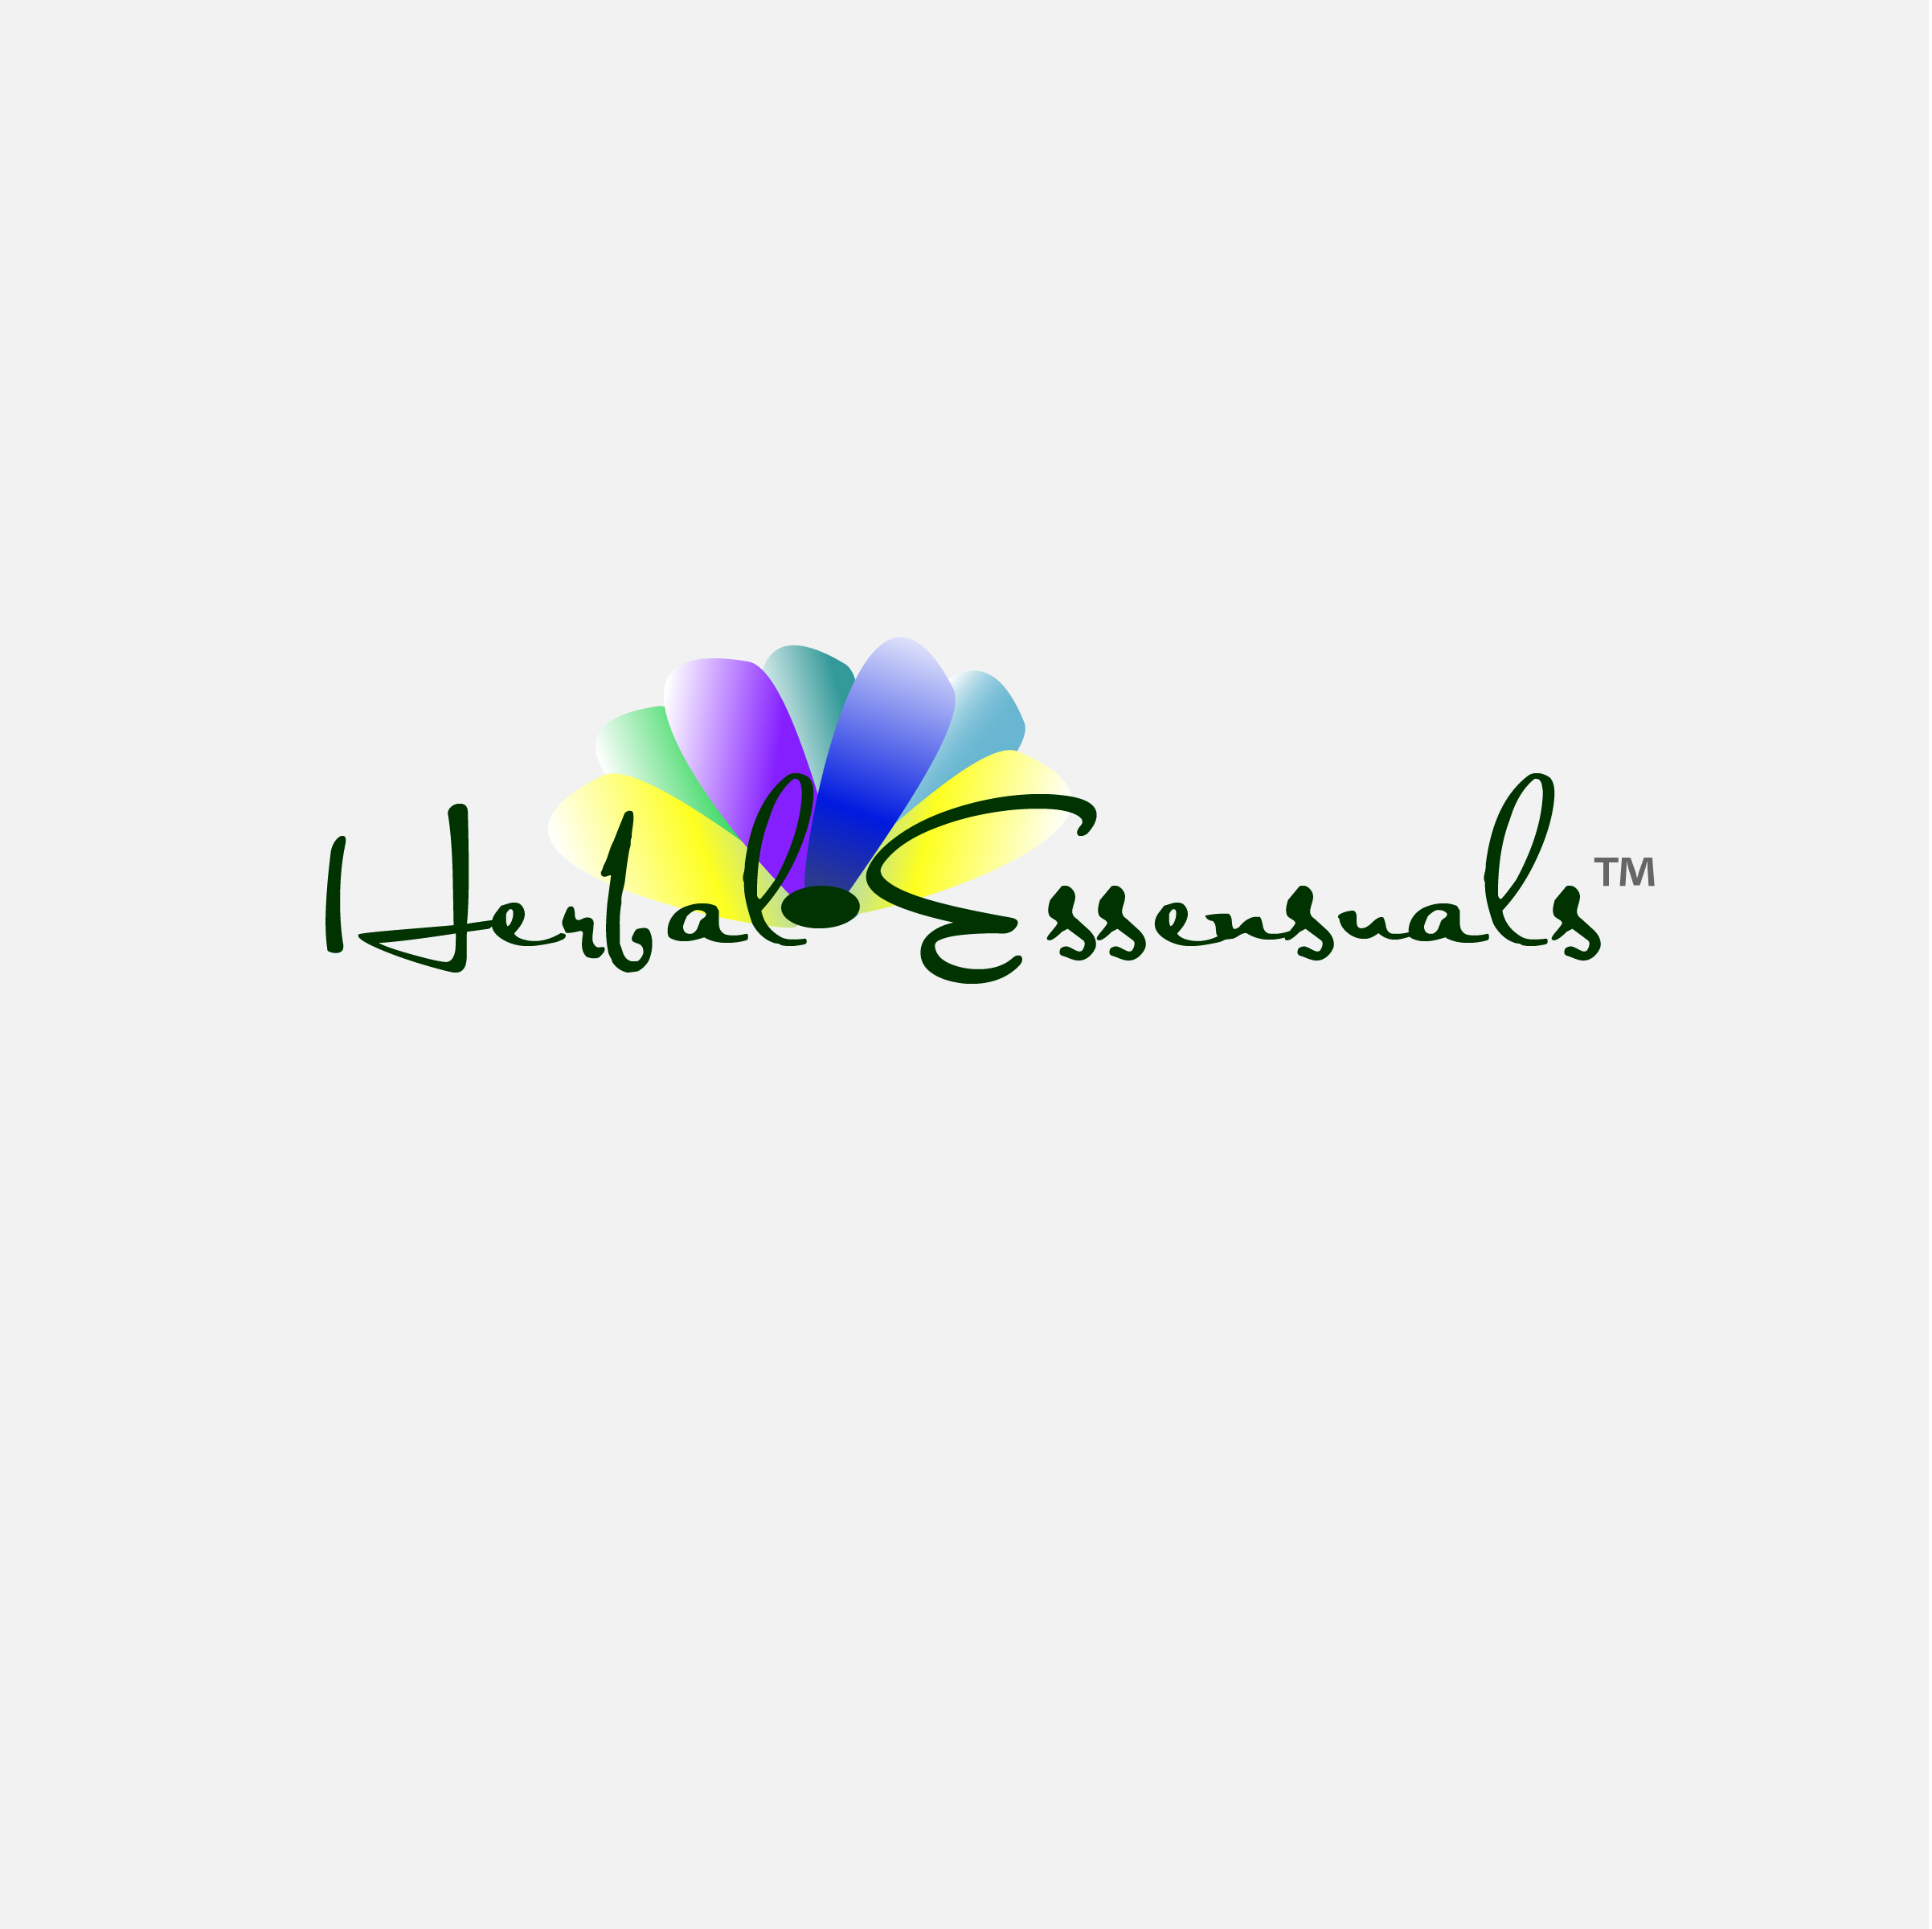 Logo Design by Nancy Grant - Entry No. 146 in the Logo Design Contest Captivating Logo Design for Herbal Essensuals.